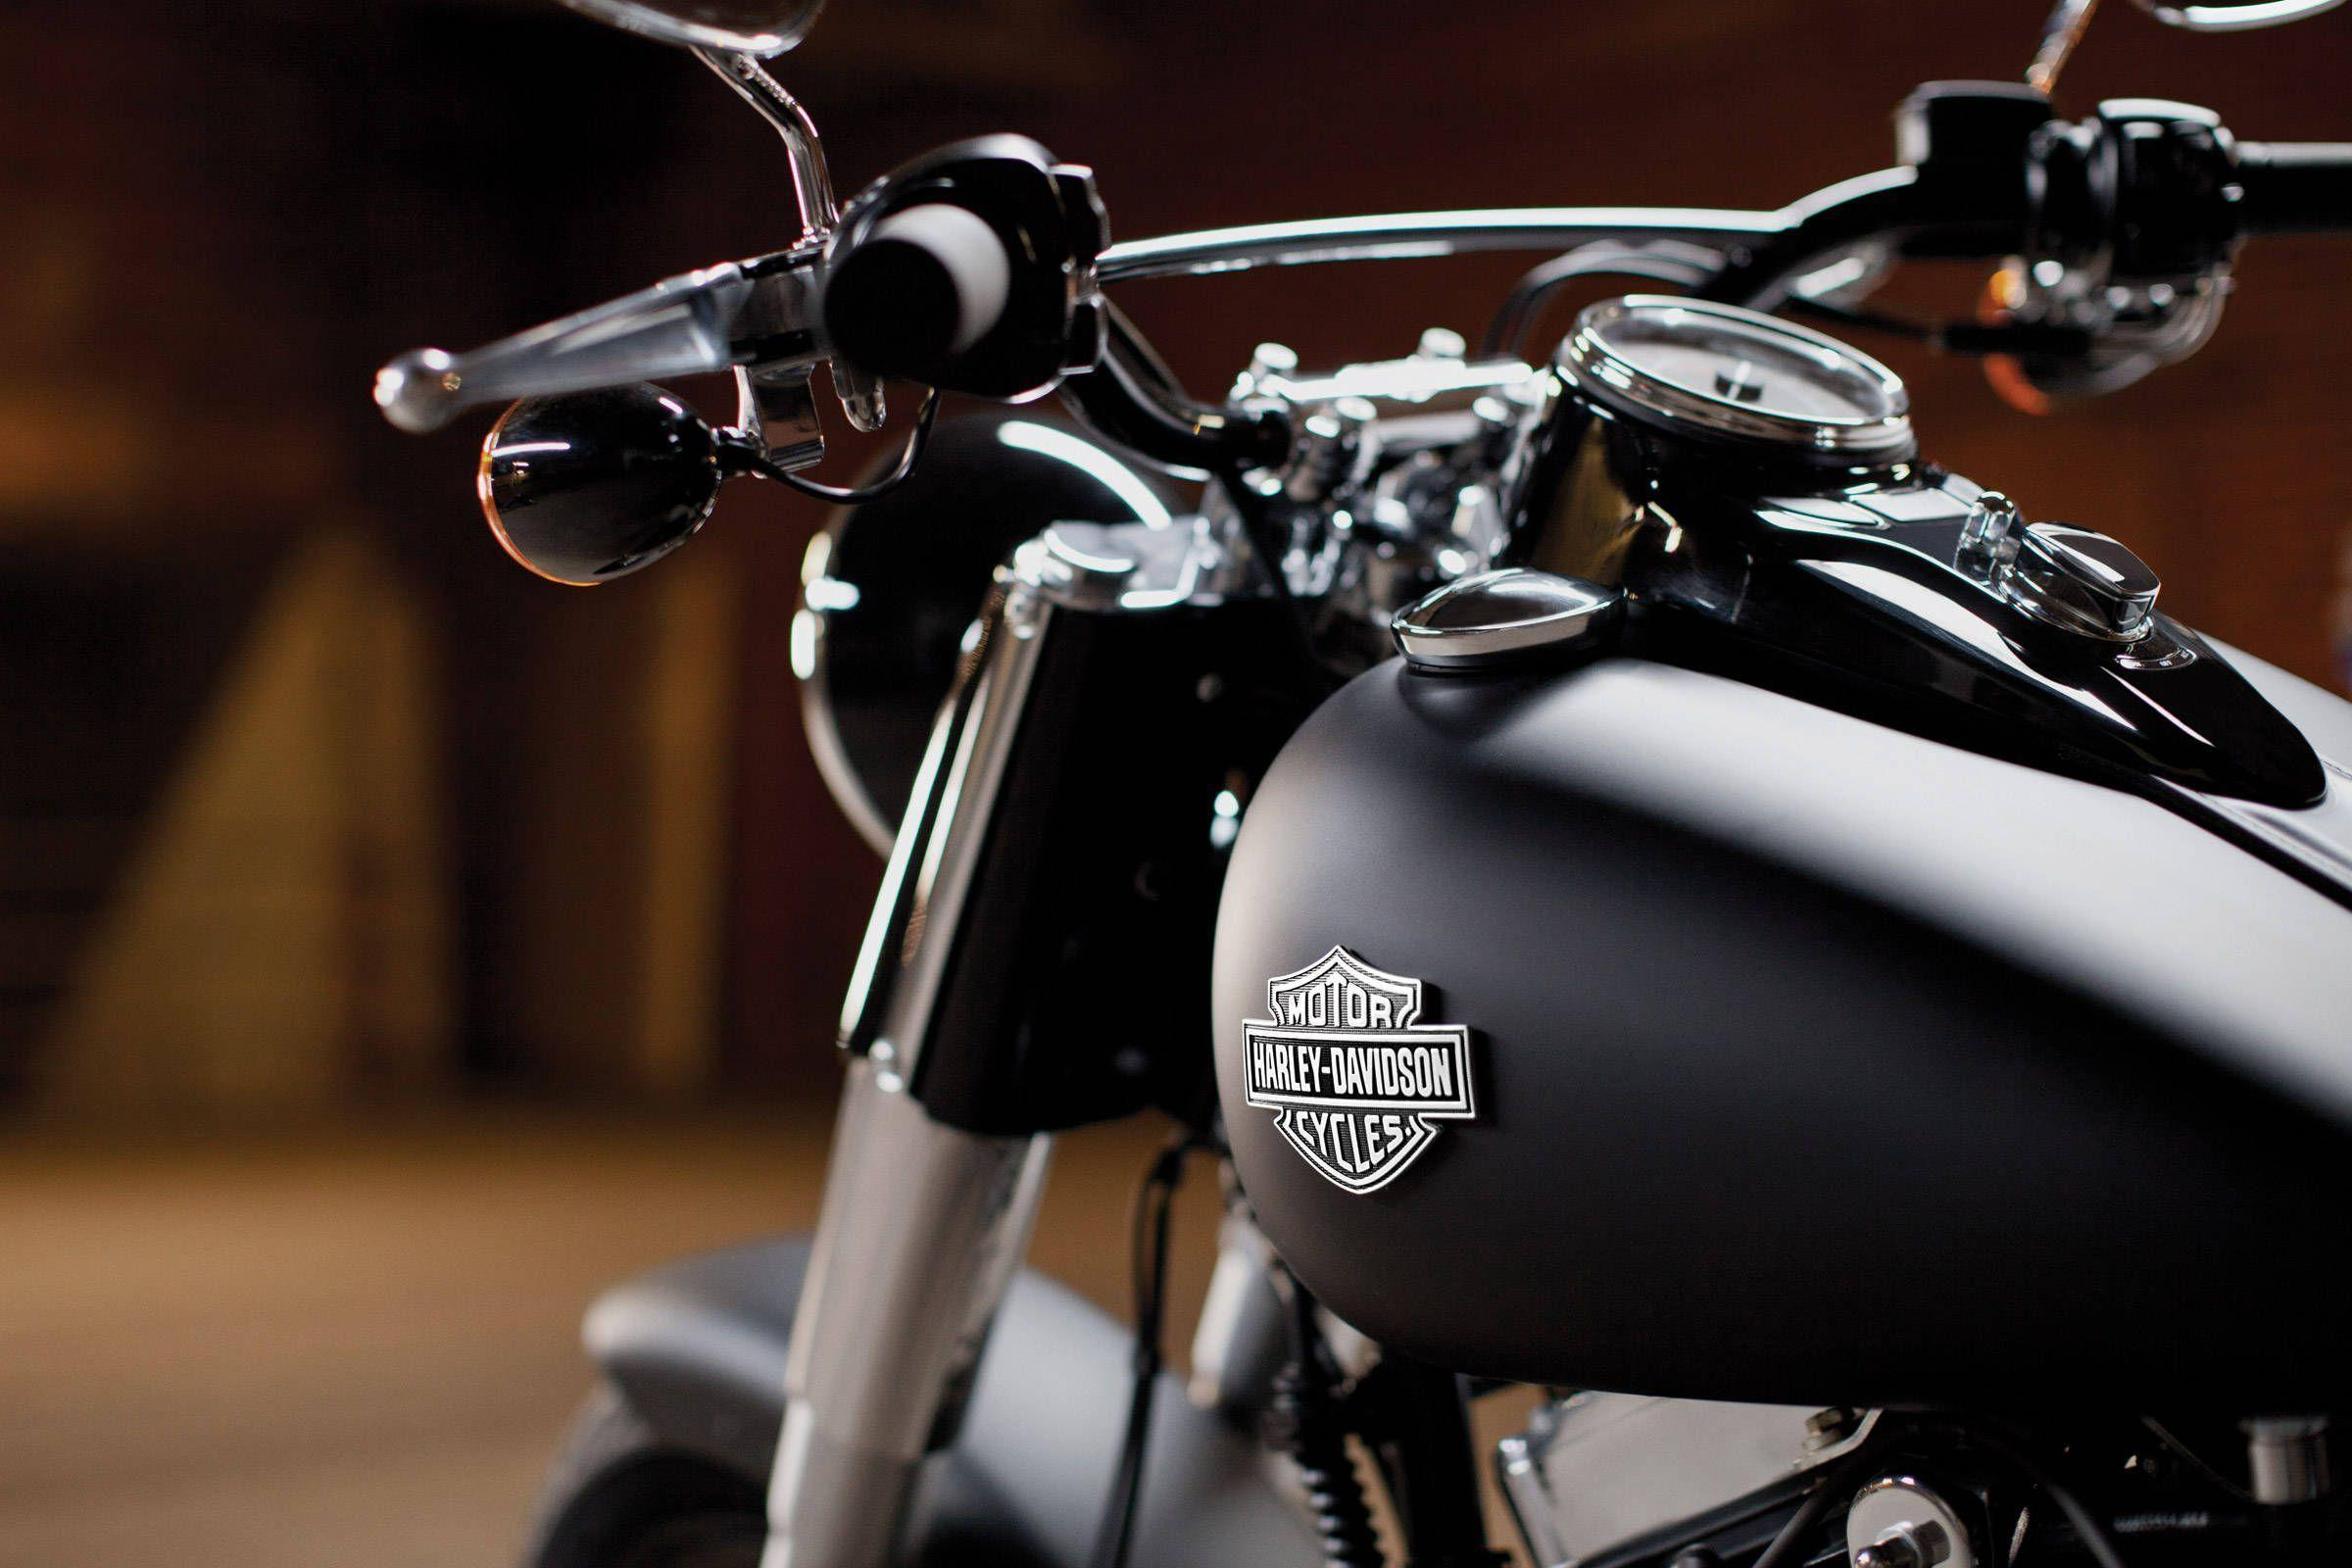 Harley Davidson Top Wallpaper - Motorcycle Wallpapers - Wholles.com